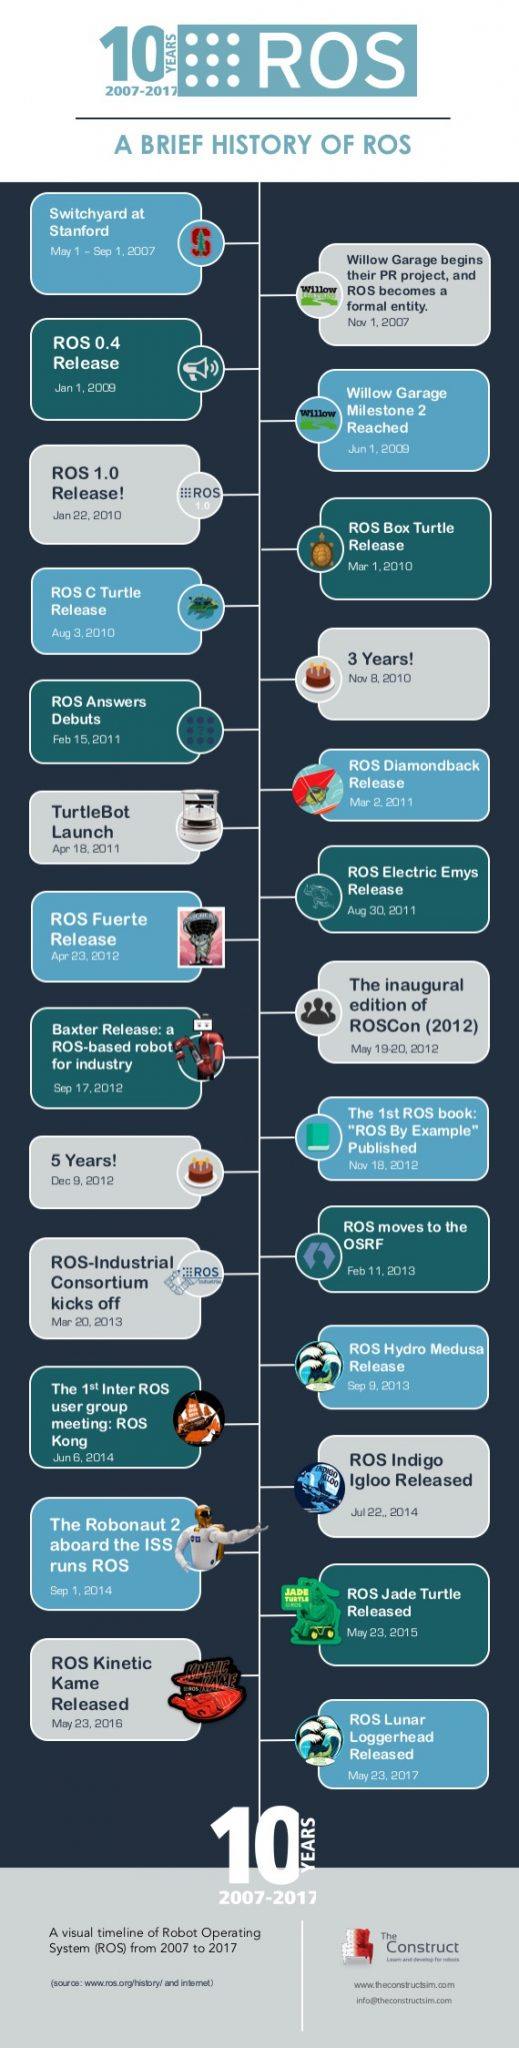 A Brief History of ROS (Robot Operating System) | The Construct